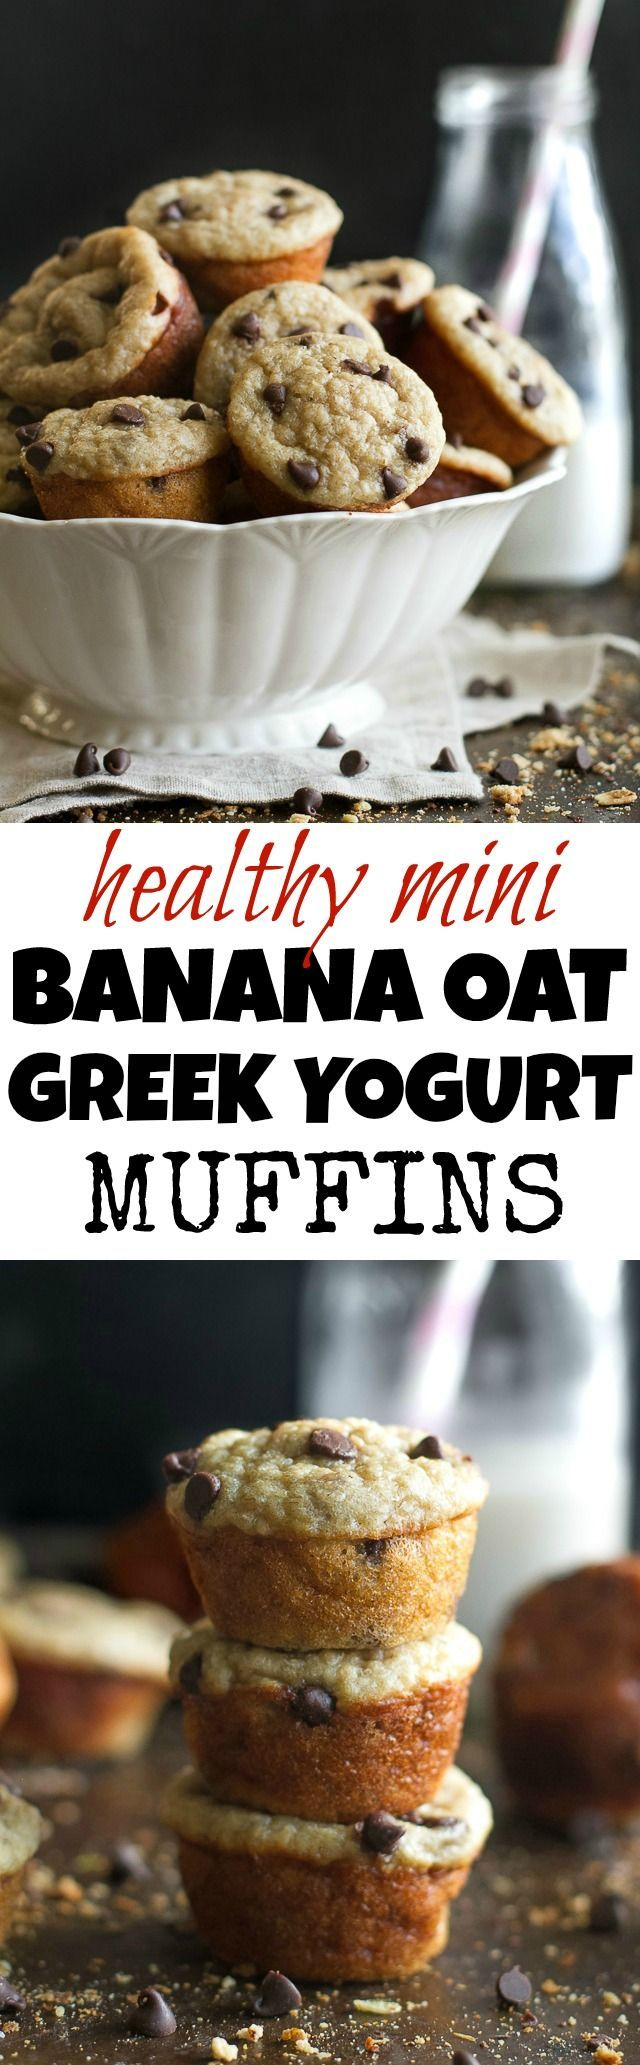 Mini Banana Oat Greek Yogurt Muffins - a healthy bite-sized snack that's PERFECT for kids (or anyone)! Made with NO flour, oil, or refined sugar, these fluffy little muffins are a delicious and easy breakfast or snack {gluten free, flourless, kid friendly